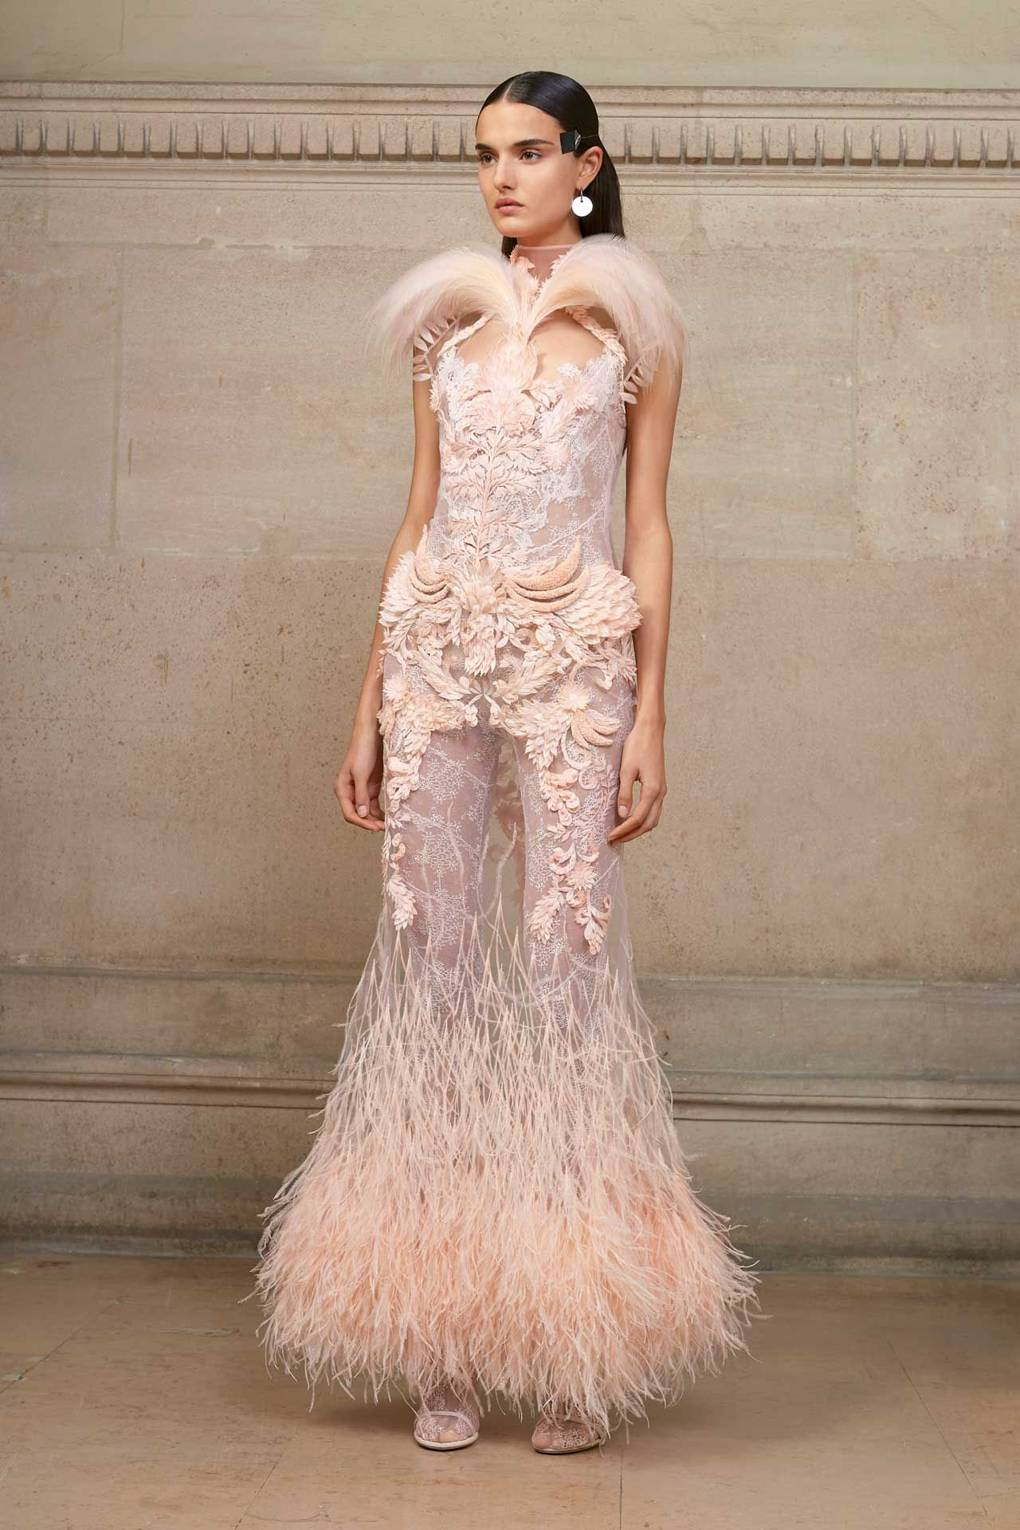 SuzyCouture - Riccardo Tisci\'s Final Collection For Givenchy ...